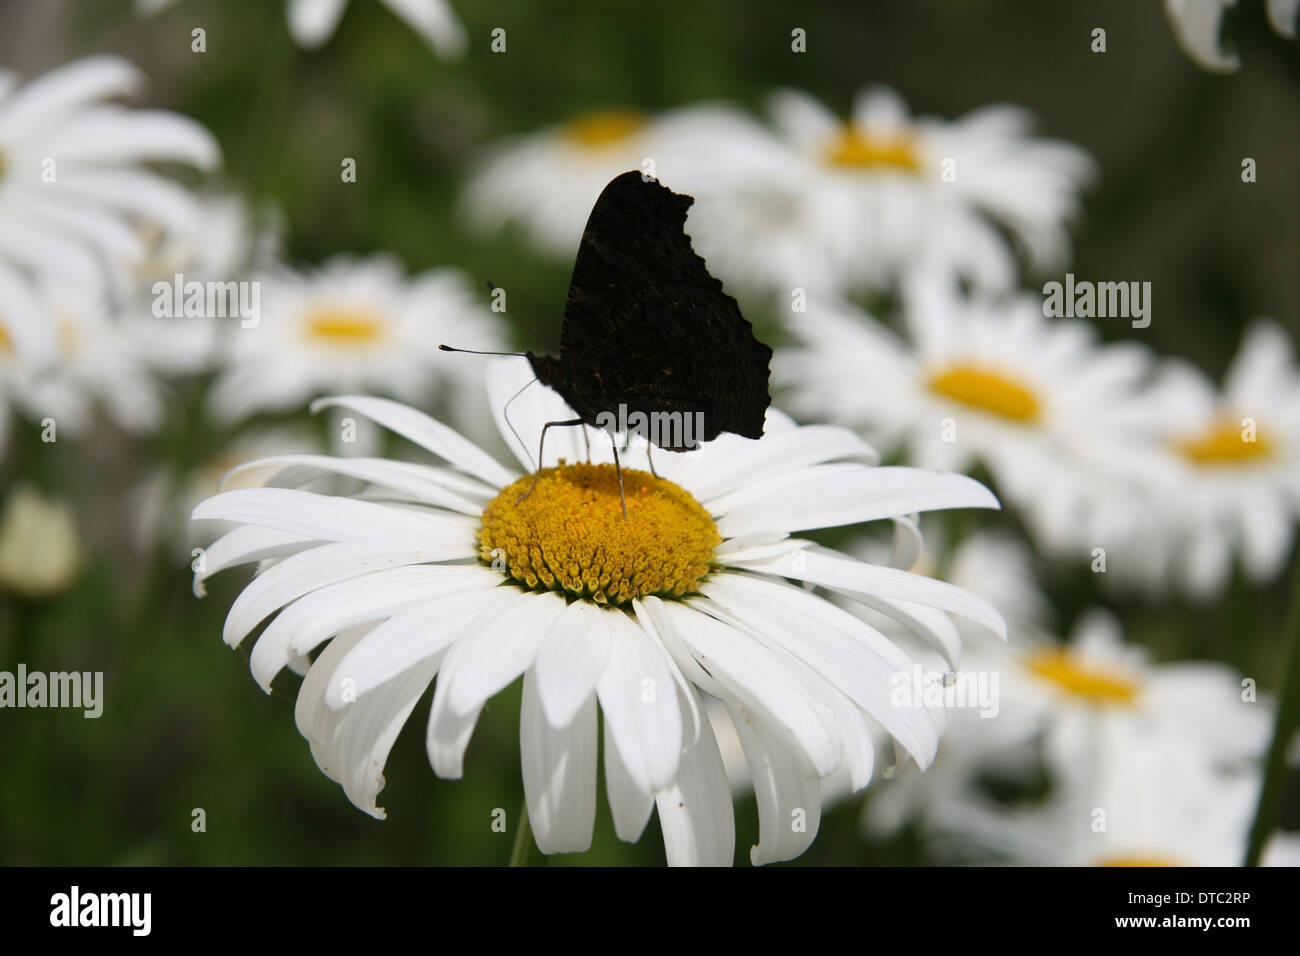 White daisy flowers butterfly stock photos white daisy flowers profile of a peacock butterfly on a white daisy flower stock image izmirmasajfo